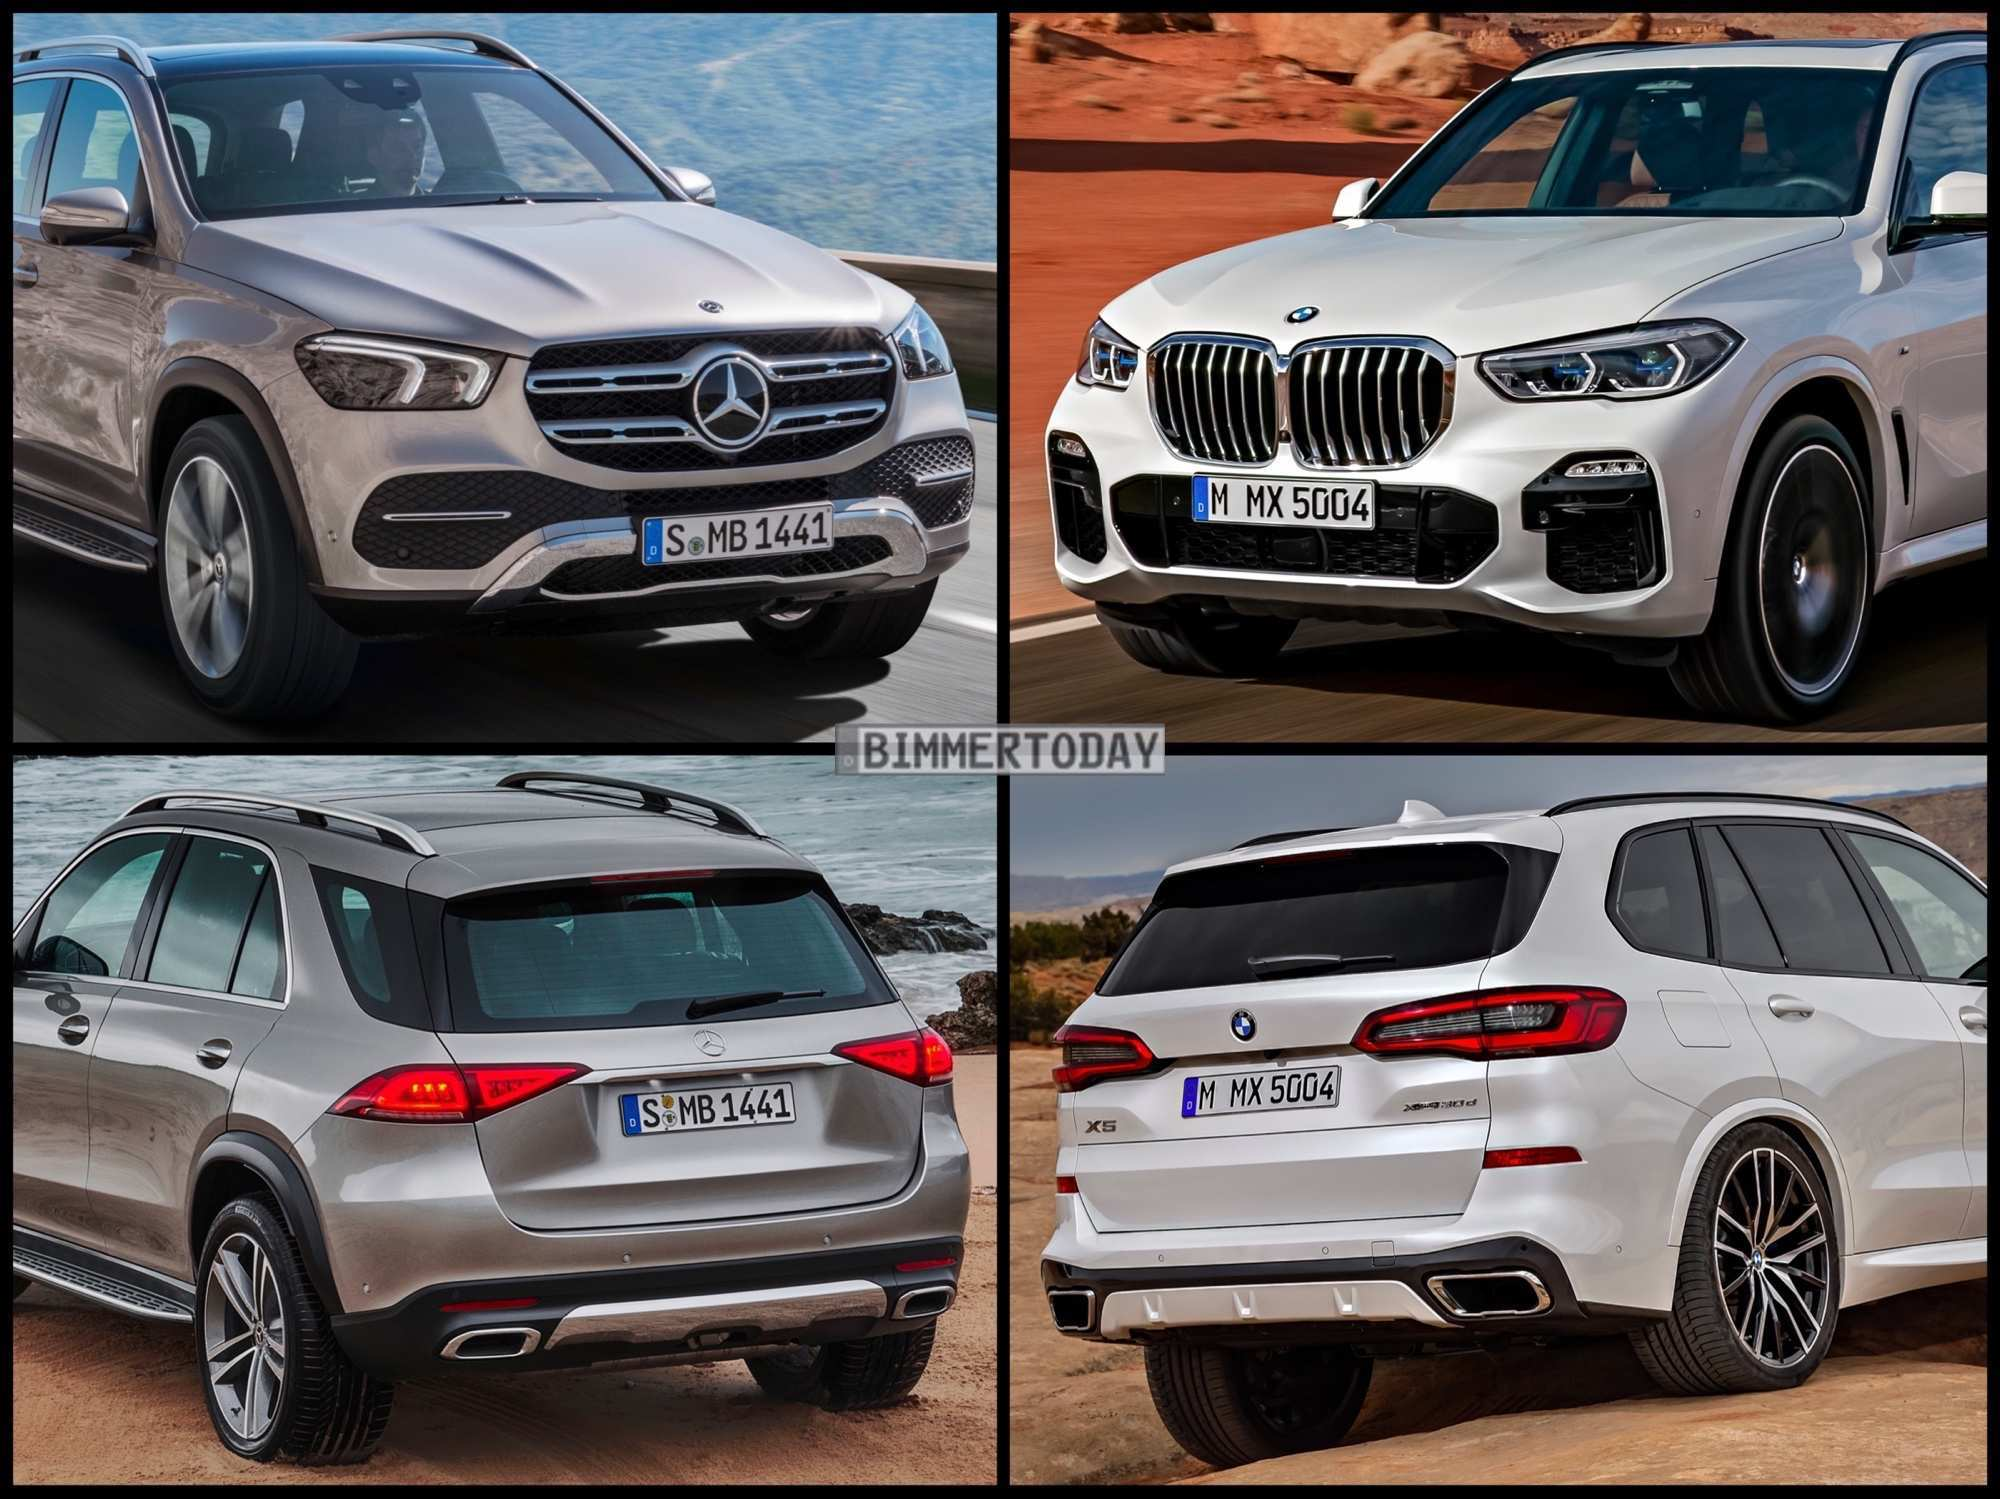 51 New 2020 Mercedes Gle Vs BMW X5 History for 2020 Mercedes Gle Vs BMW X5